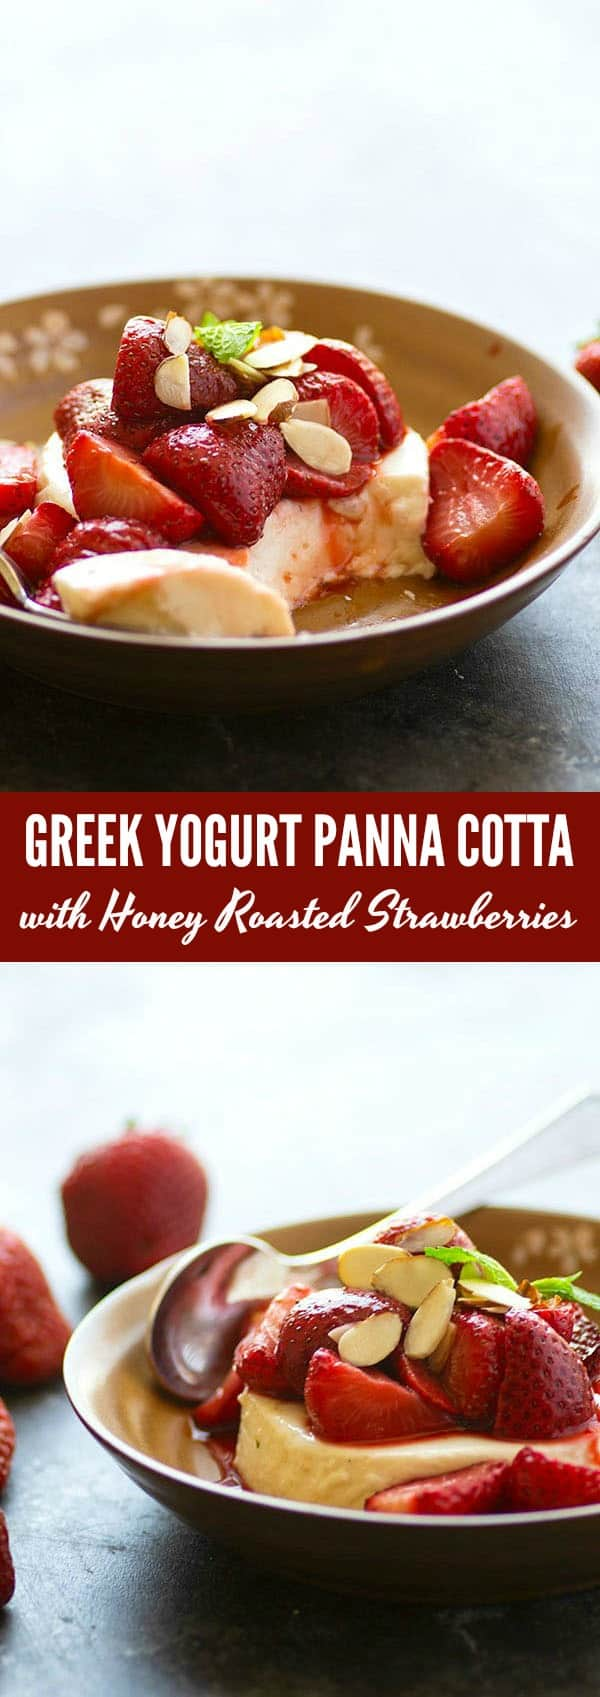 Silky greek yogurt panna cotta is piled high with juicy honey roasted strawberries for a luxurious no-bake summer dessert!